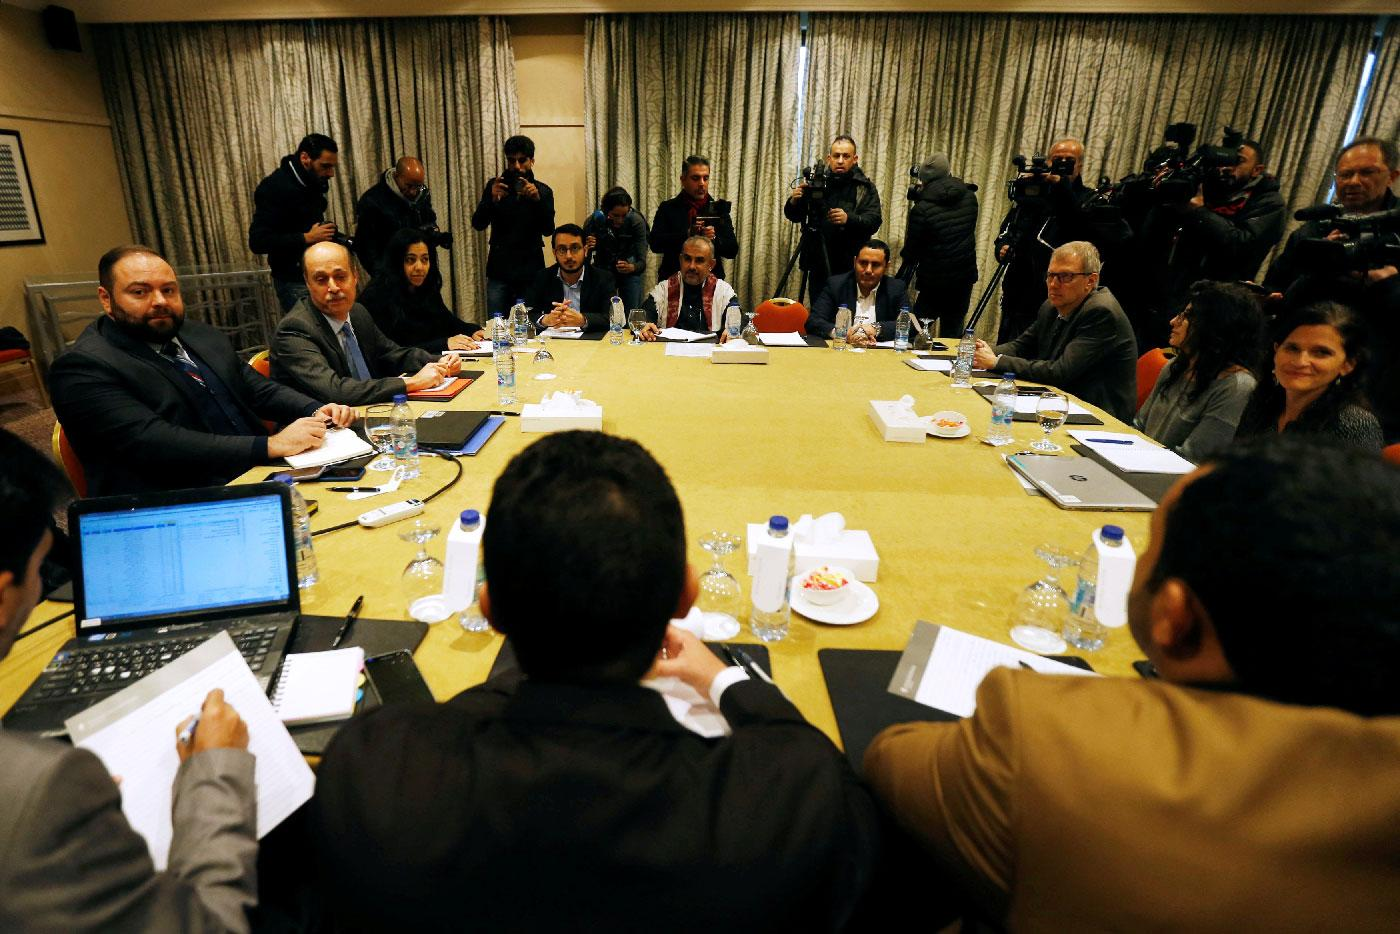 Delegates from the Iran-aligned Houthi movement and the Saudi-backed Yemeni government meet to discuss prisoner swap deal in Amman, Jordan on January 17, 2019.